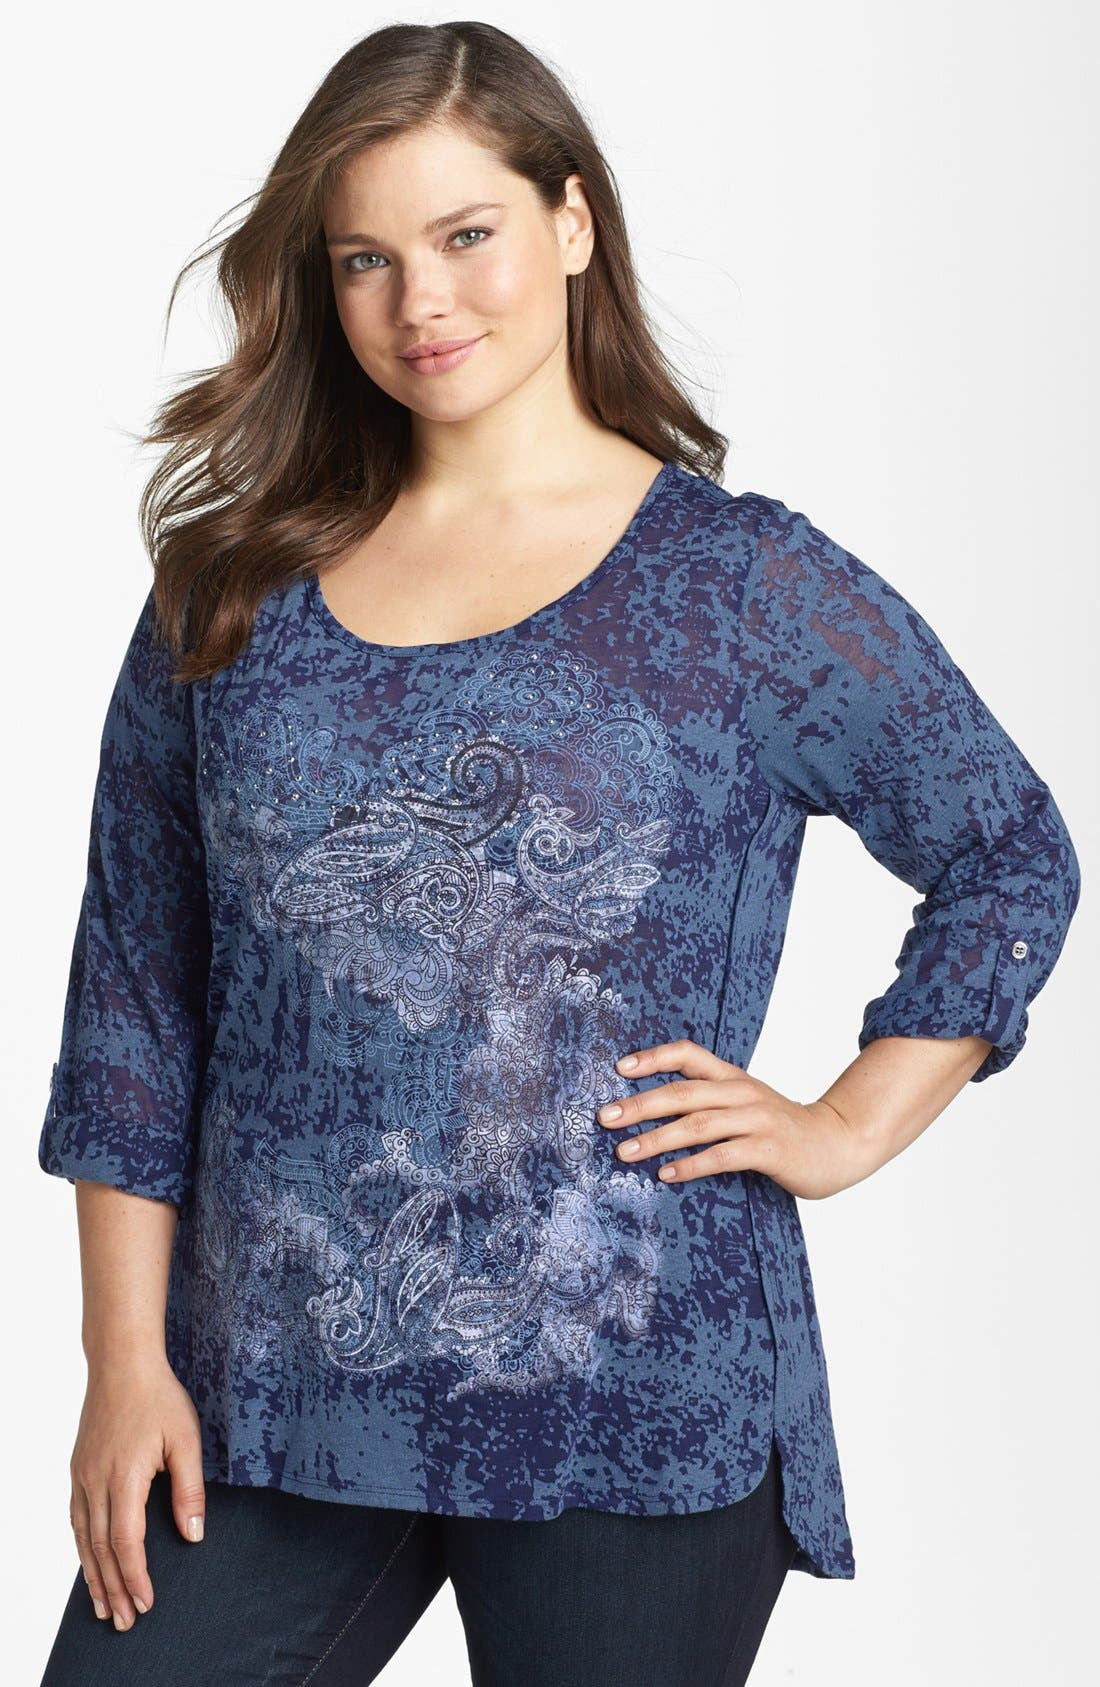 Alternate Image 1 Selected - Madison & Berkeley Print Burnout Tee (Plus Size)